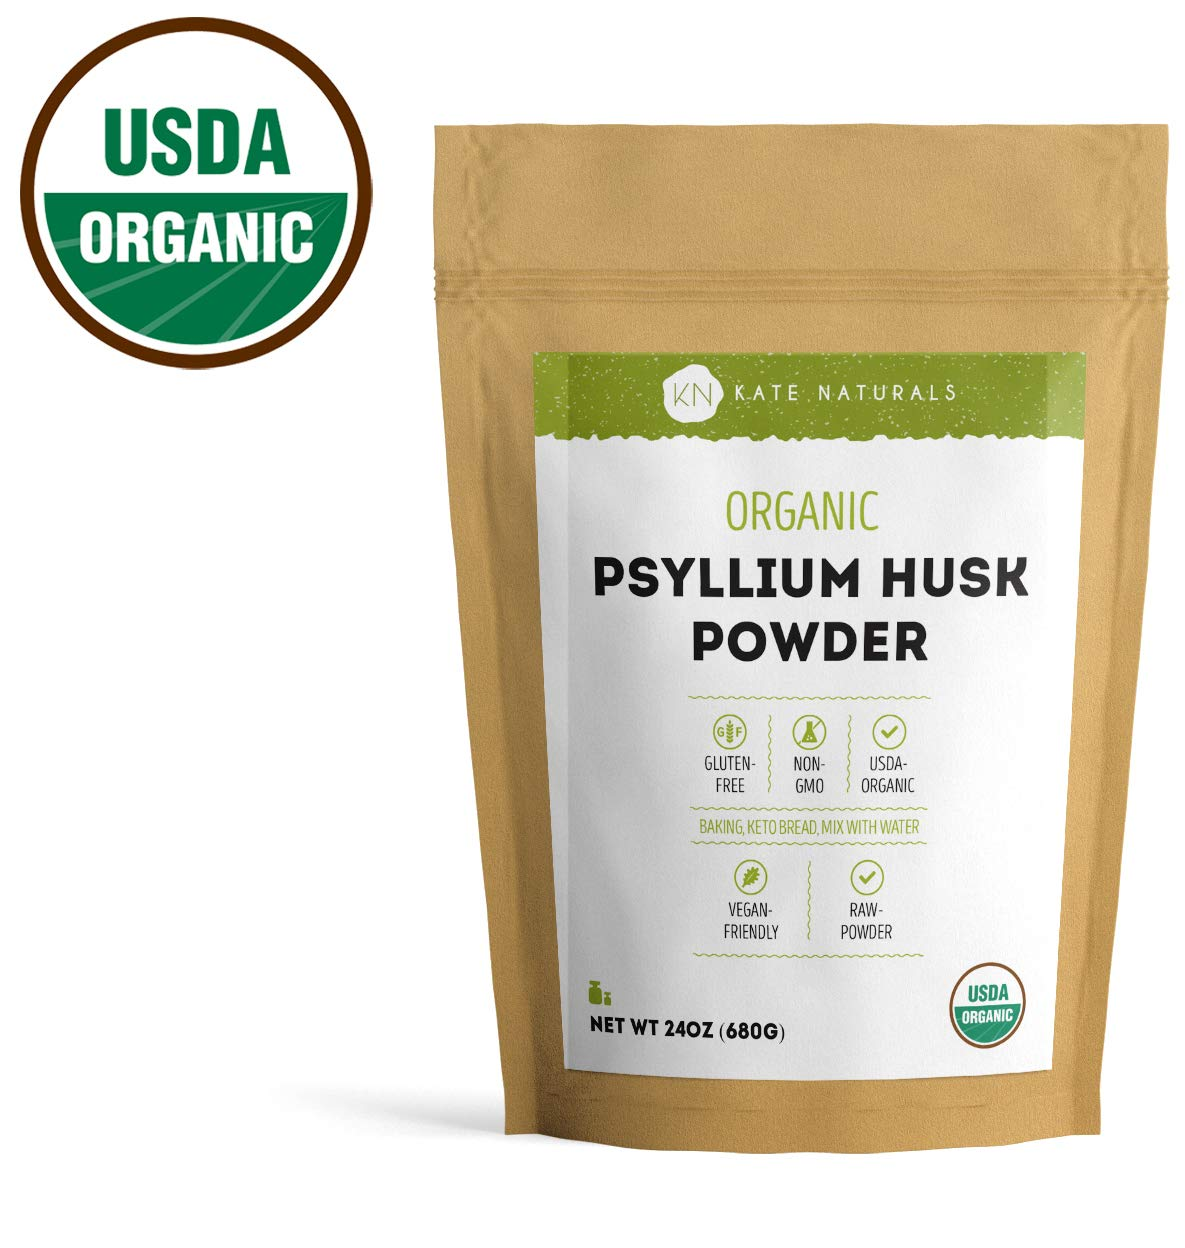 Psyllium Husk Powder Organic by Kate Naturals (1.5lb). Perfect for Baking, Keto Bread and Consuming With Water. Gluten-Free & Non-GMO. Large Resealable Bag. 1-Year Guarantee (24oz). by Kate Naturals